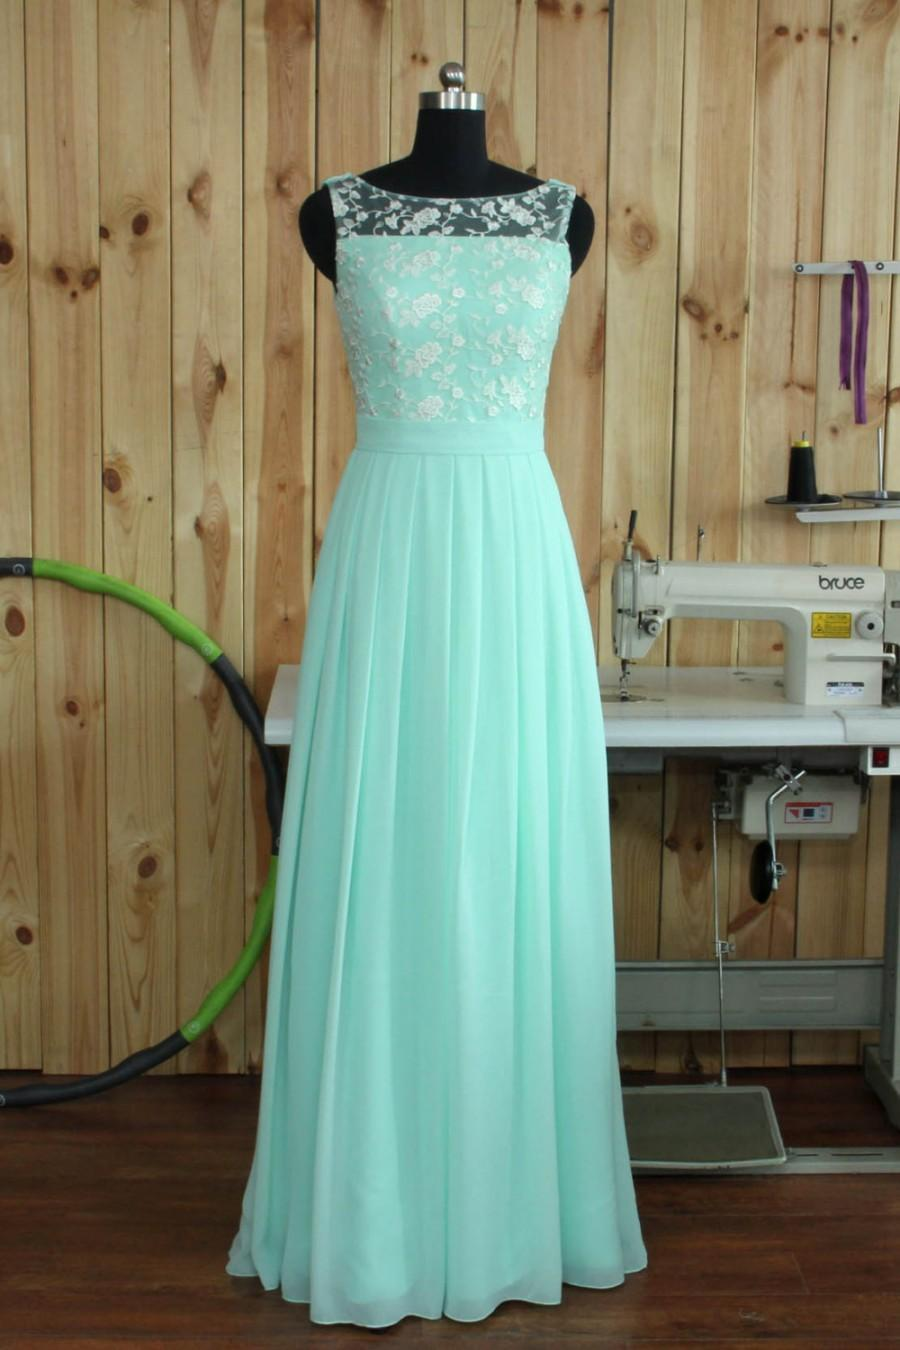 Mariage - 2016 Mint Lace Chiffon Bridesmaid dress, Boat Neck Wedding Party dress, Formal dress, Prom Dress,Woman Evening dress floor length